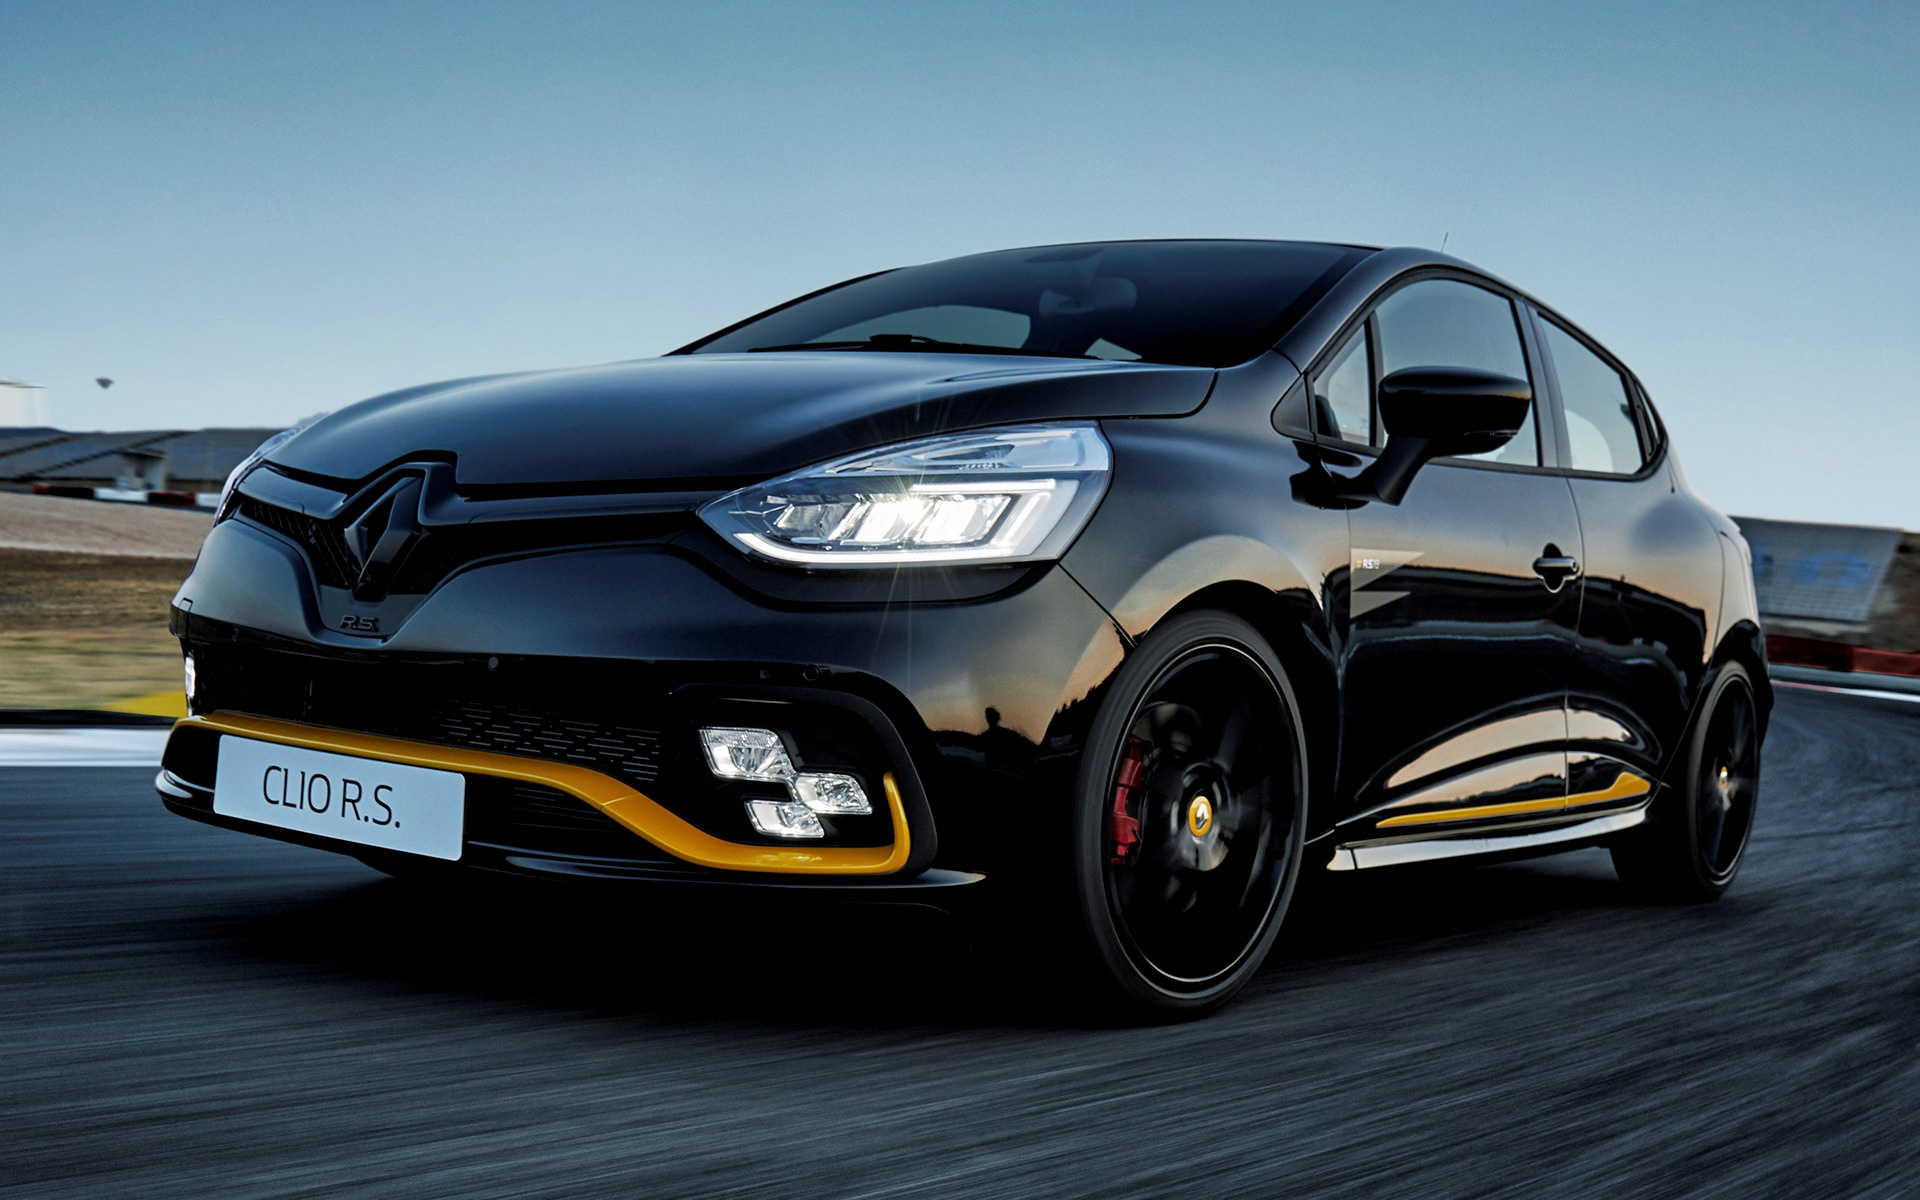 2016 Dodge Ram >> 2018 Renault Clio RS 18 - Wallpapers and HD Images | Car Pixel